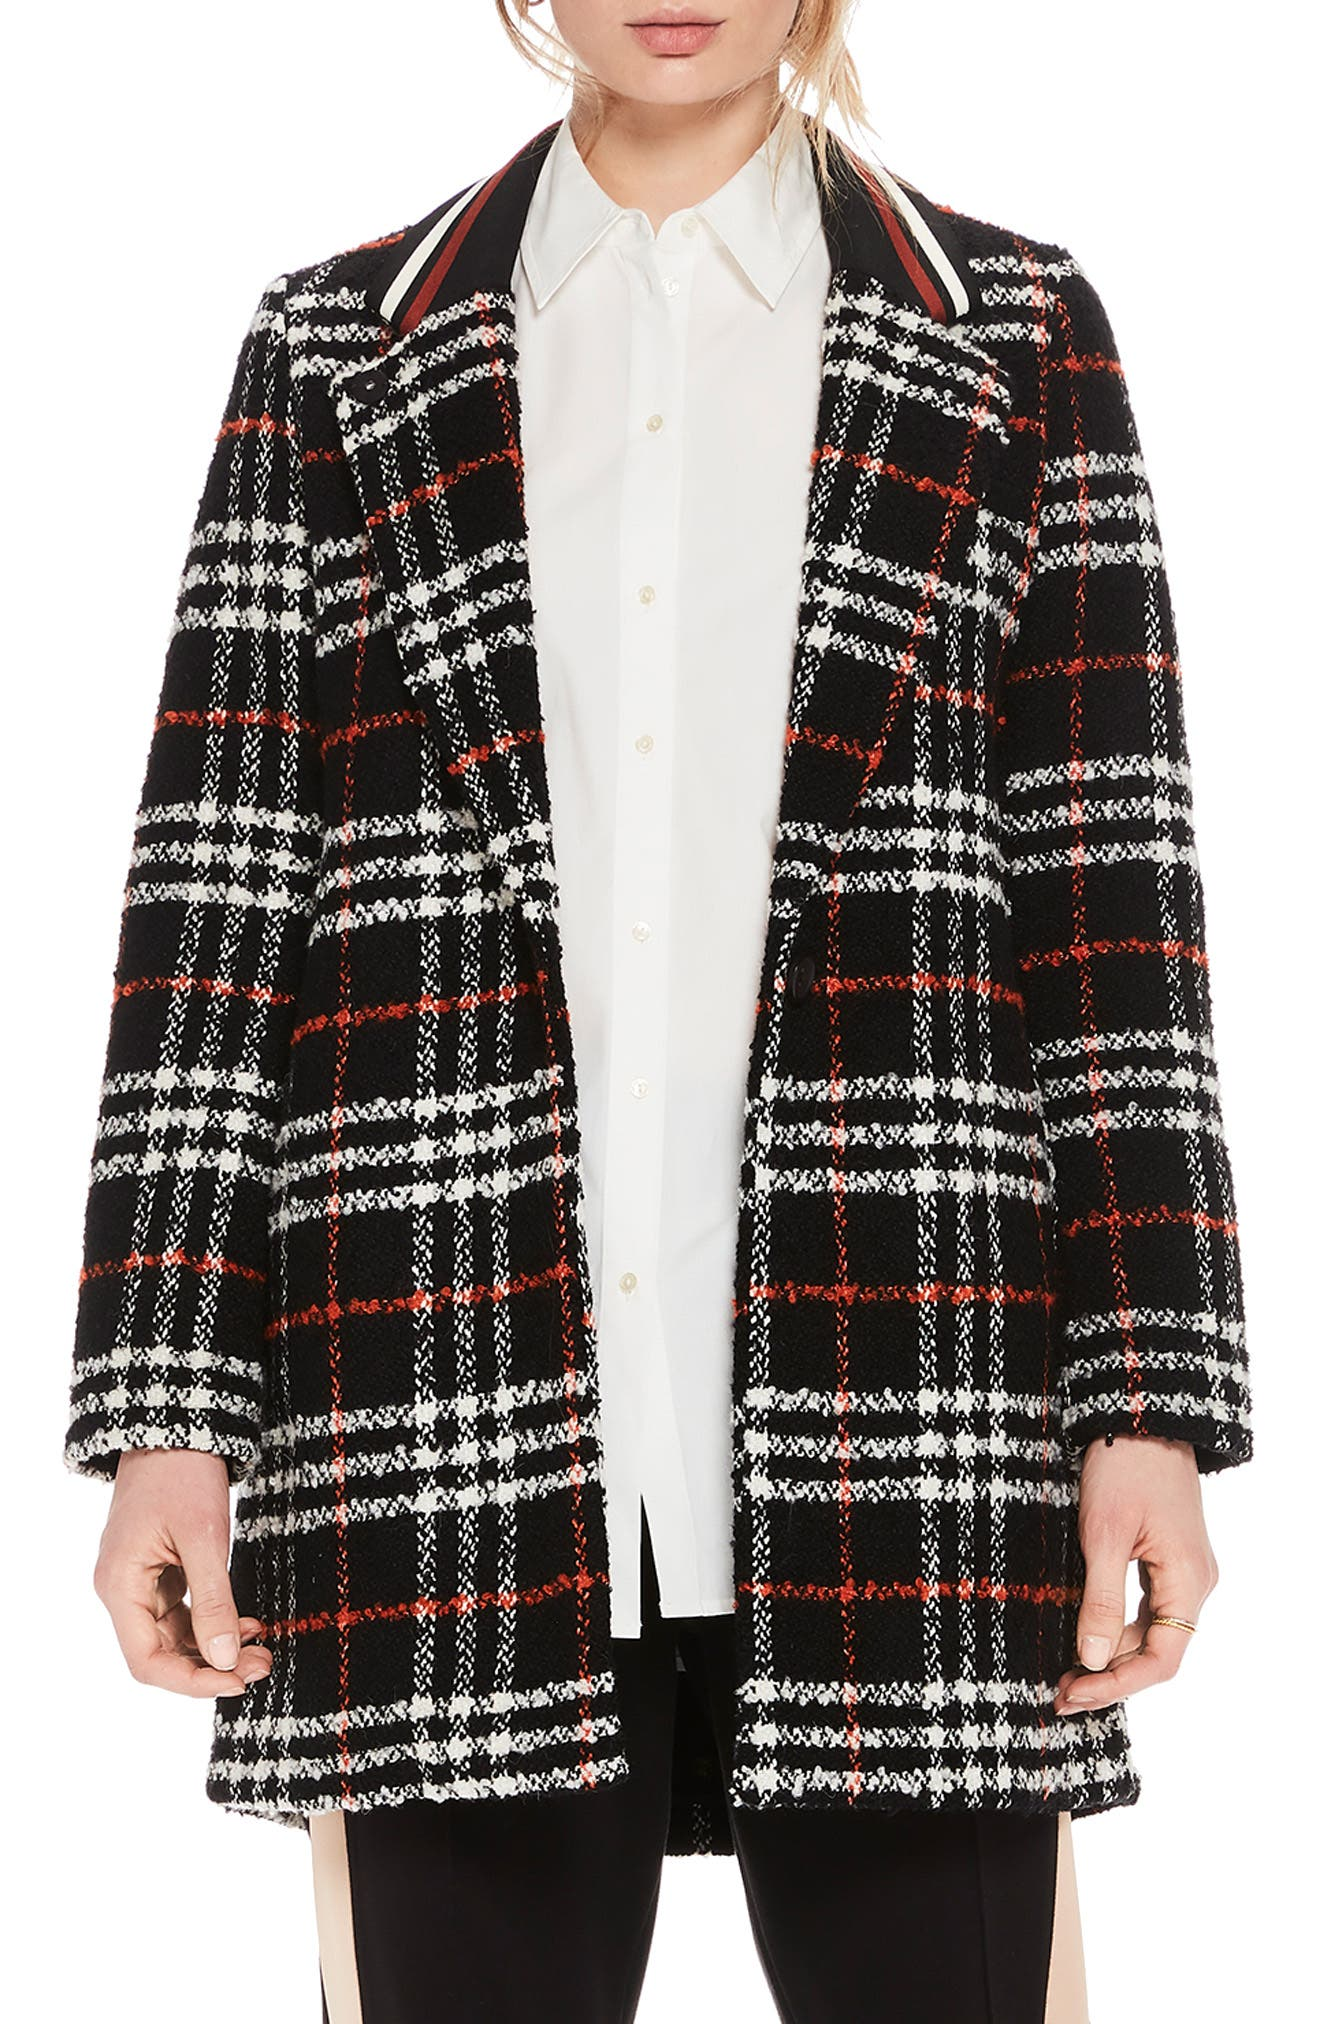 Bonded Wool Blend Jacket,                         Main,                         color, BLACK AND RED PLAID